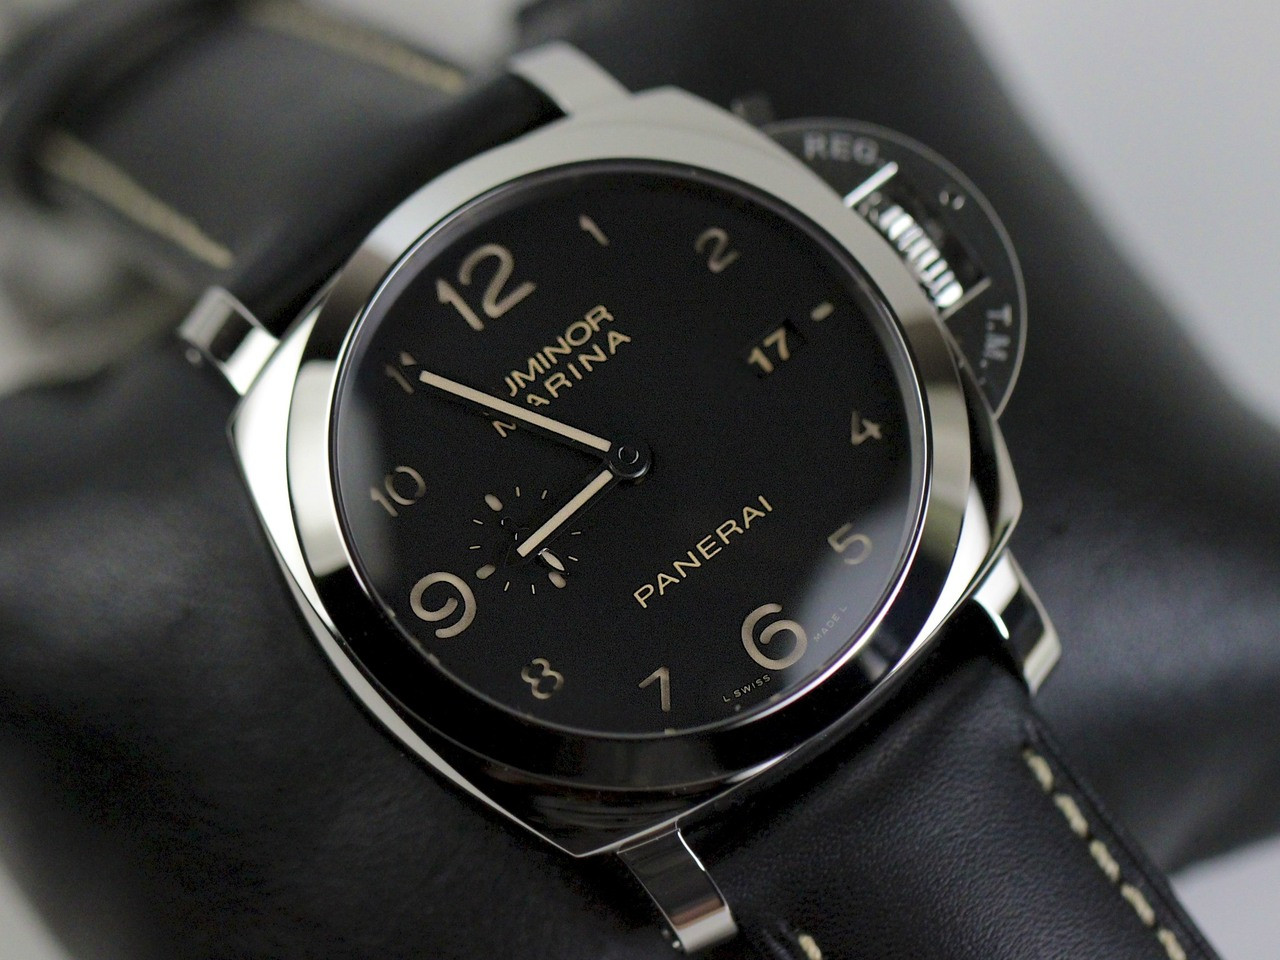 panerai watches car articles watch fiber new a makes news normally brakes used from composite carbon bloomberg in with